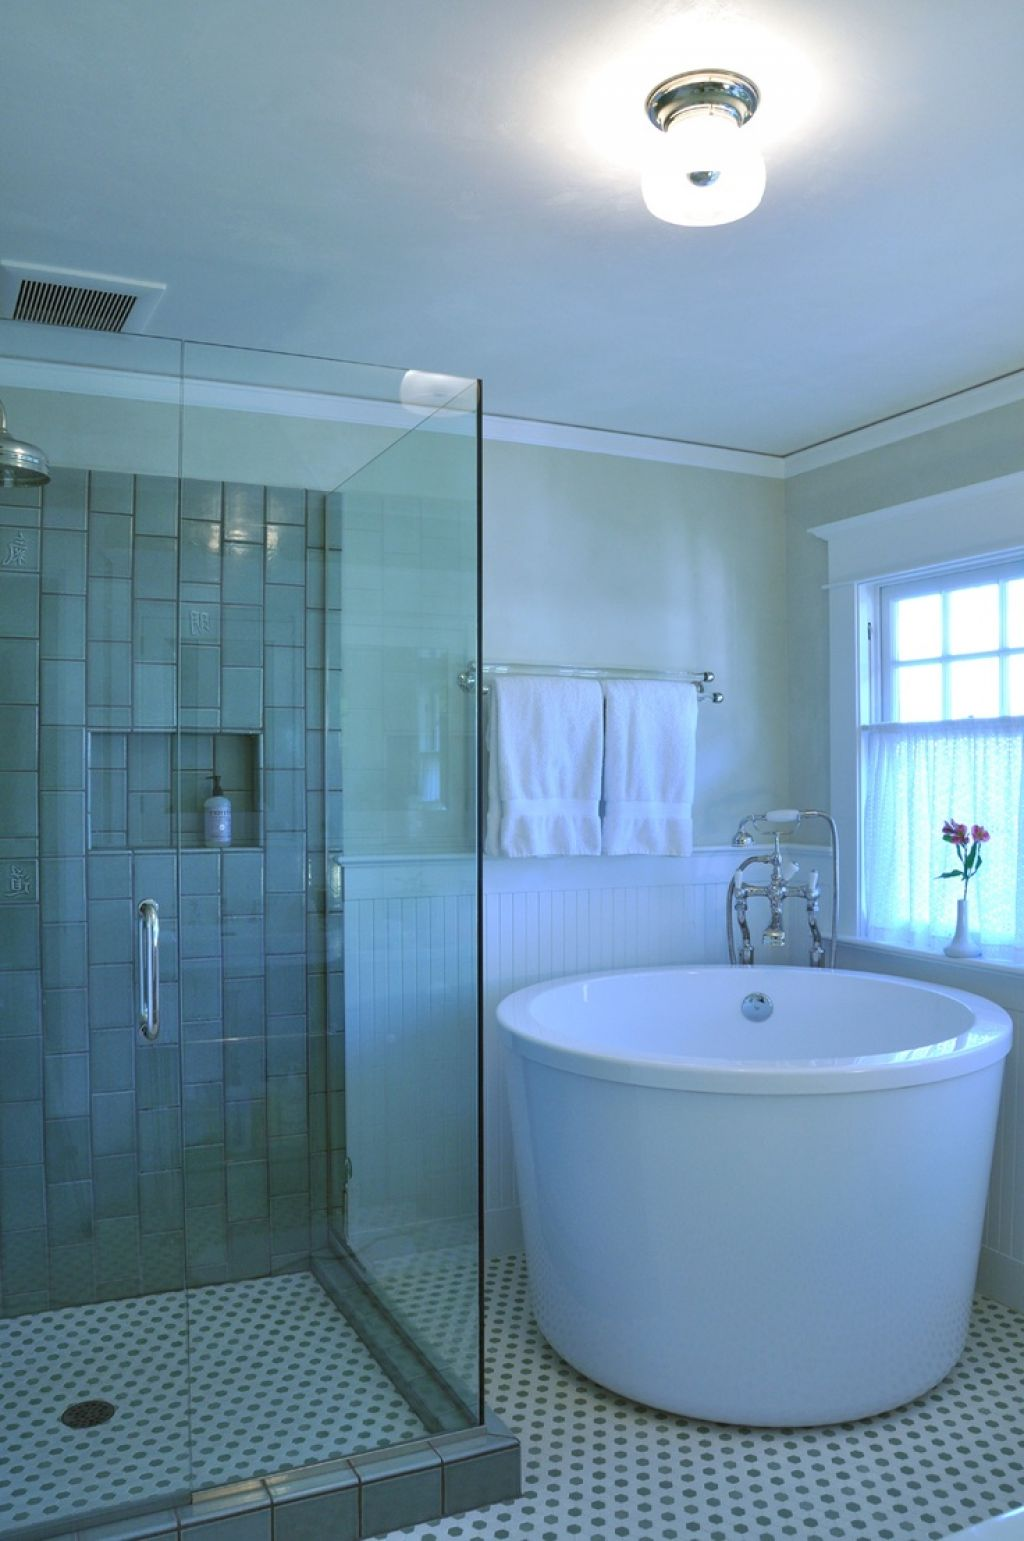 The options of deep tubs for small bathroom homesfeed for Small bathroom design ideas with tub